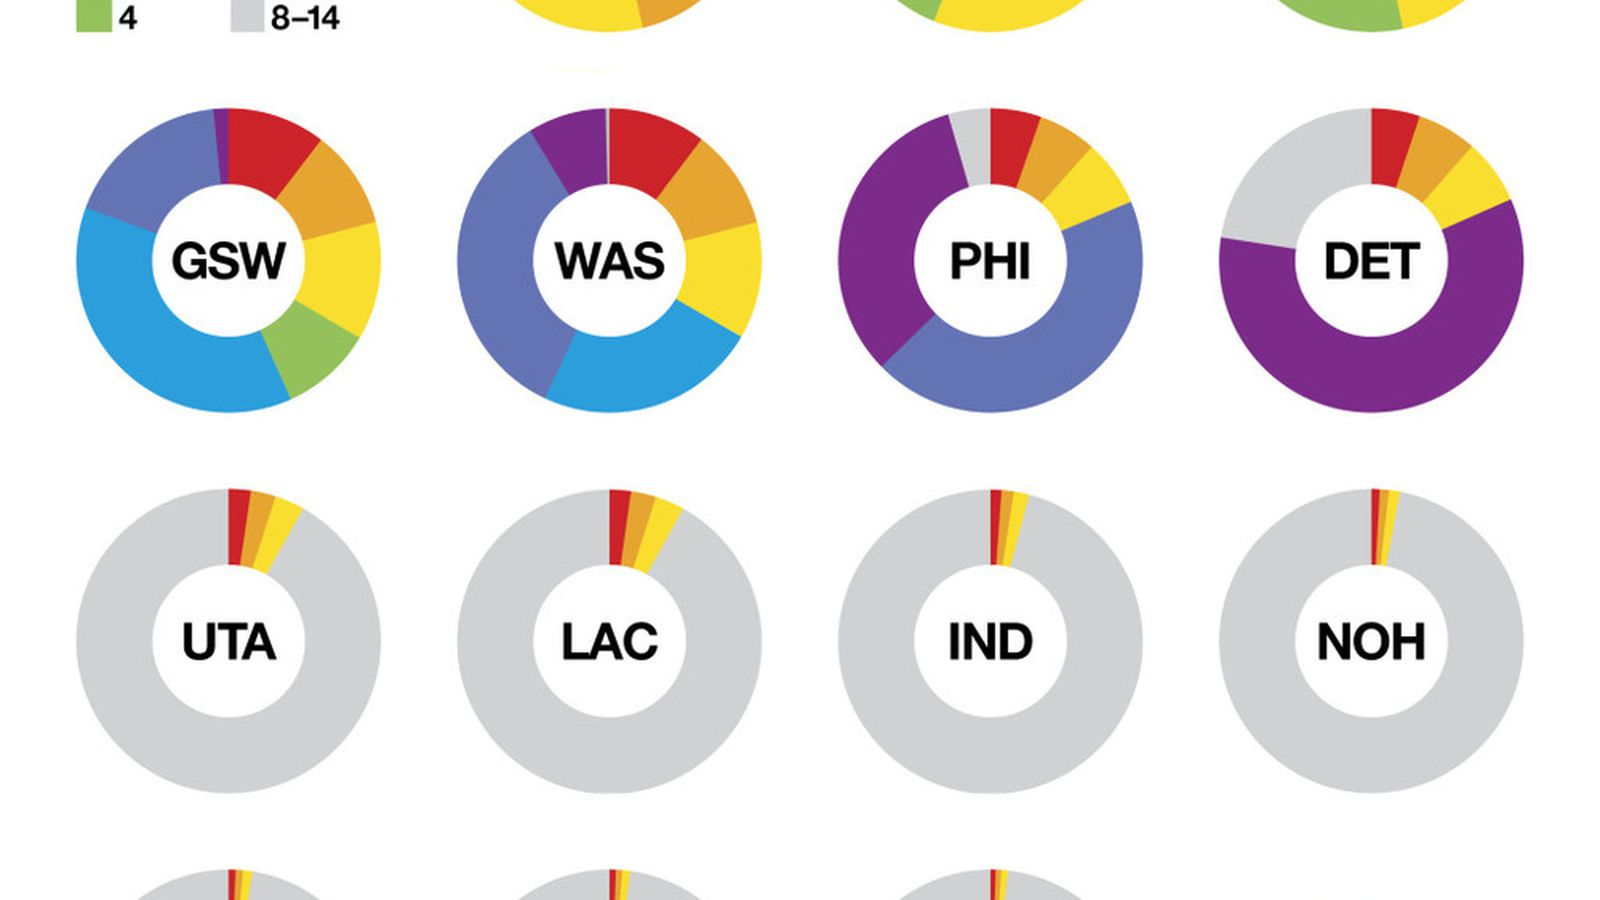 NBA Draft Lottery Odds. Now In Pretty Pie Chart Format - Ridiculous Upside